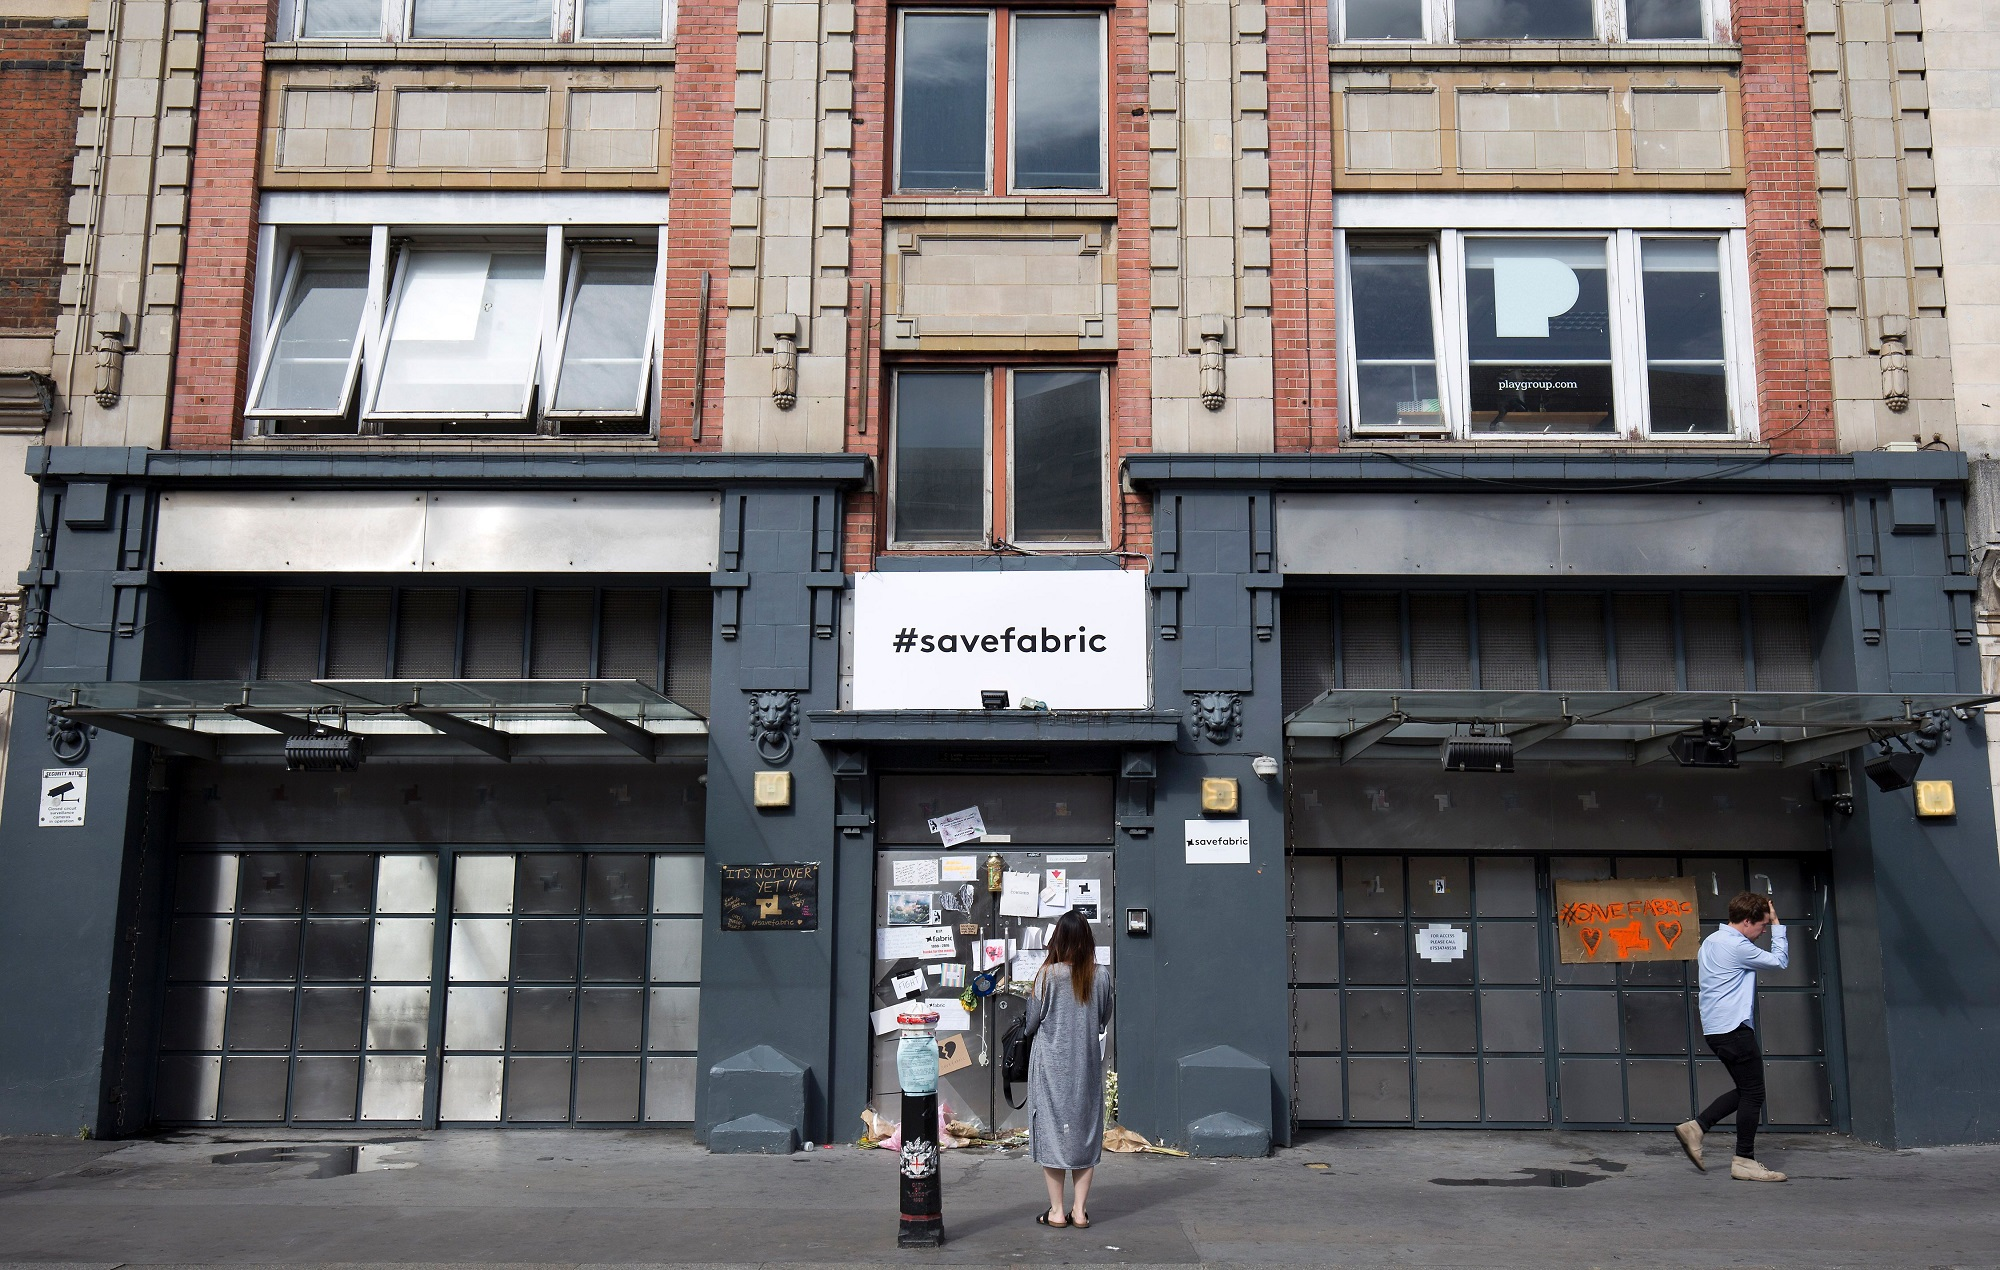 Fabric was previously closed down in 2016